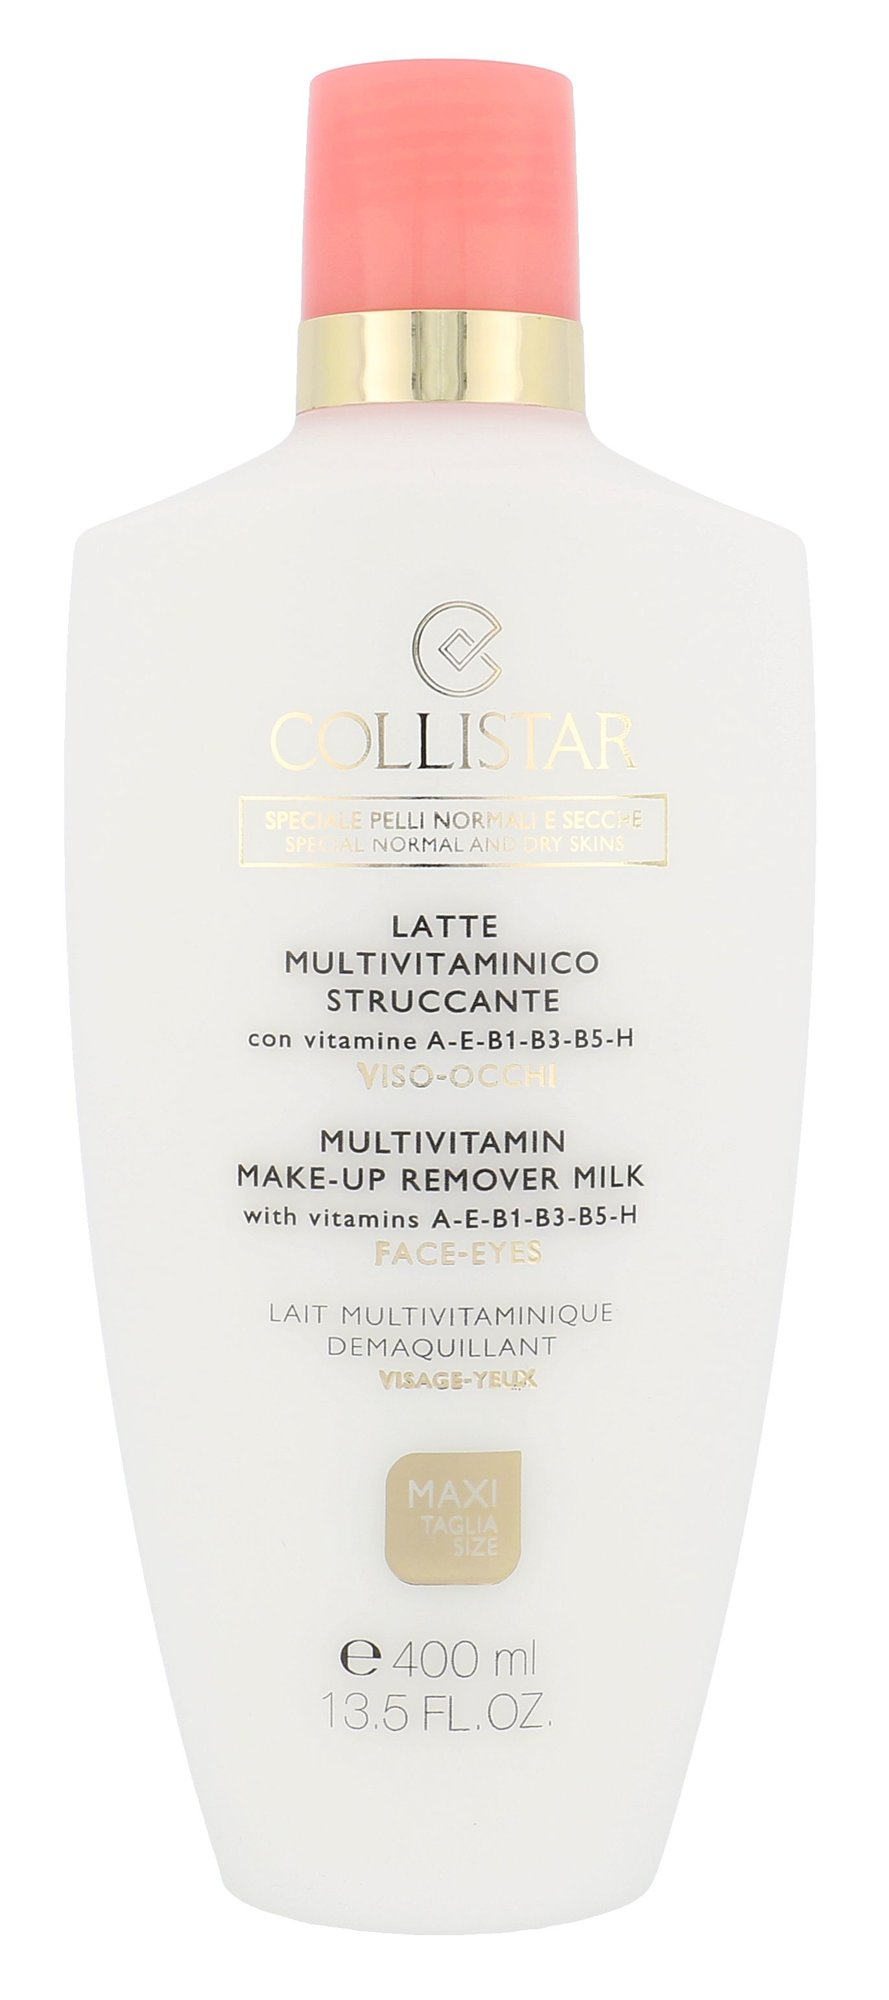 Collistar Multivitamin Make-Up Remover Milk Cosmetic 400ml